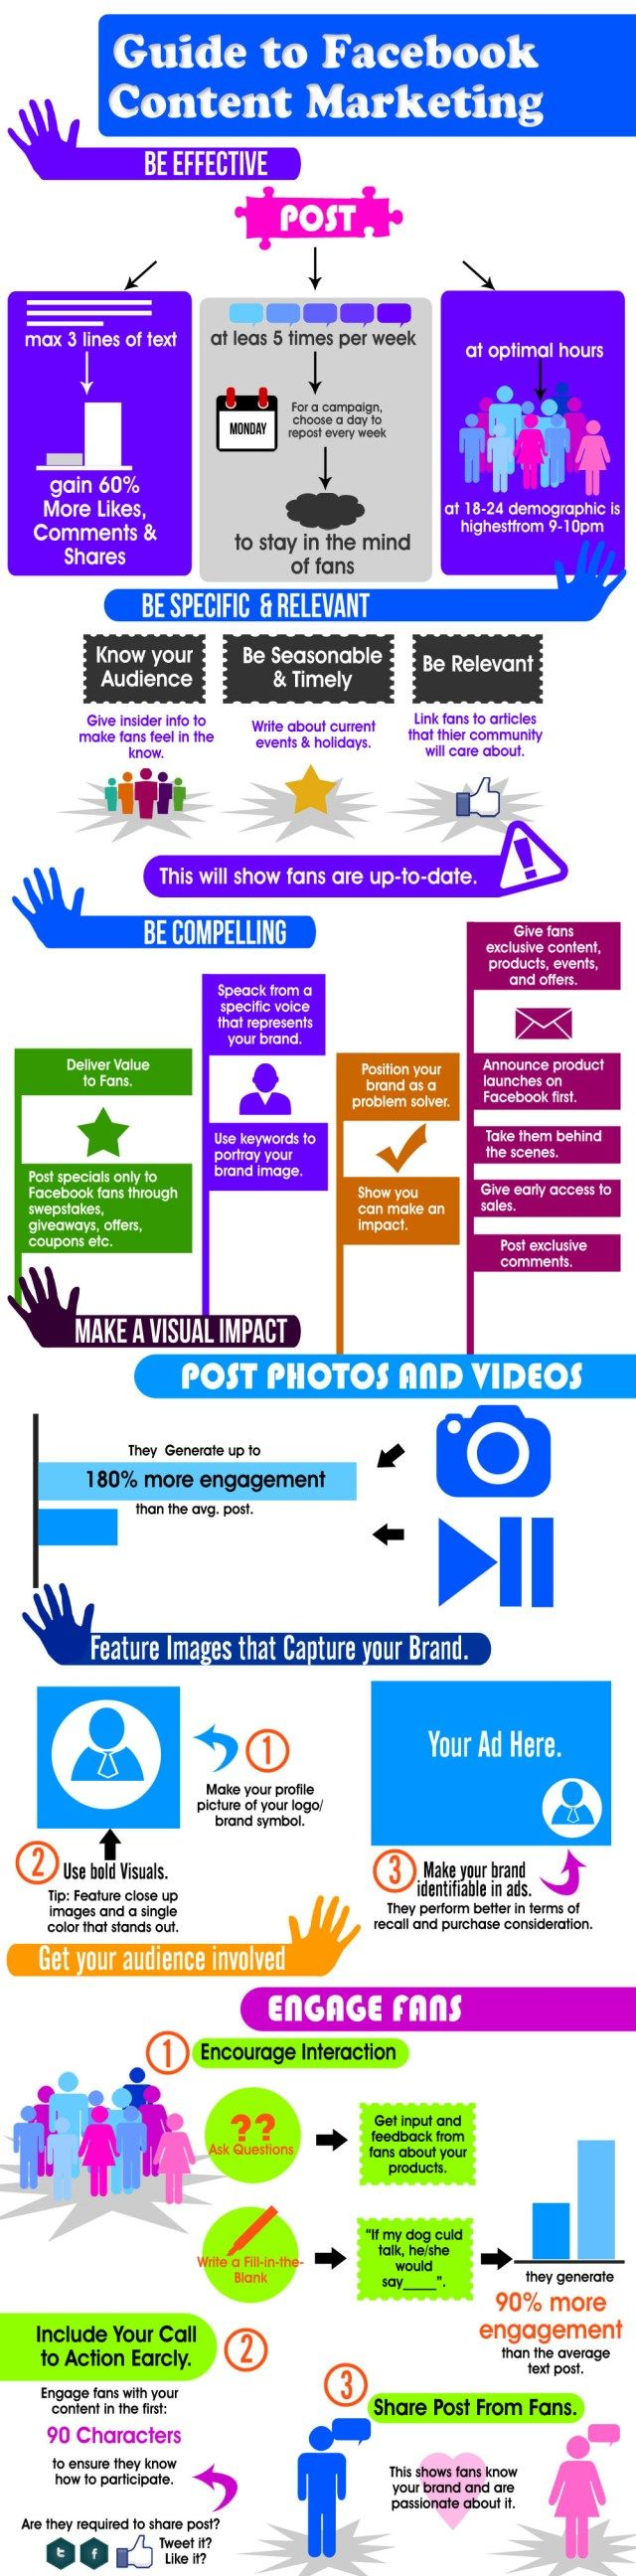 Guide to FaceBook content marketing #infografia #infographic #socialmedia